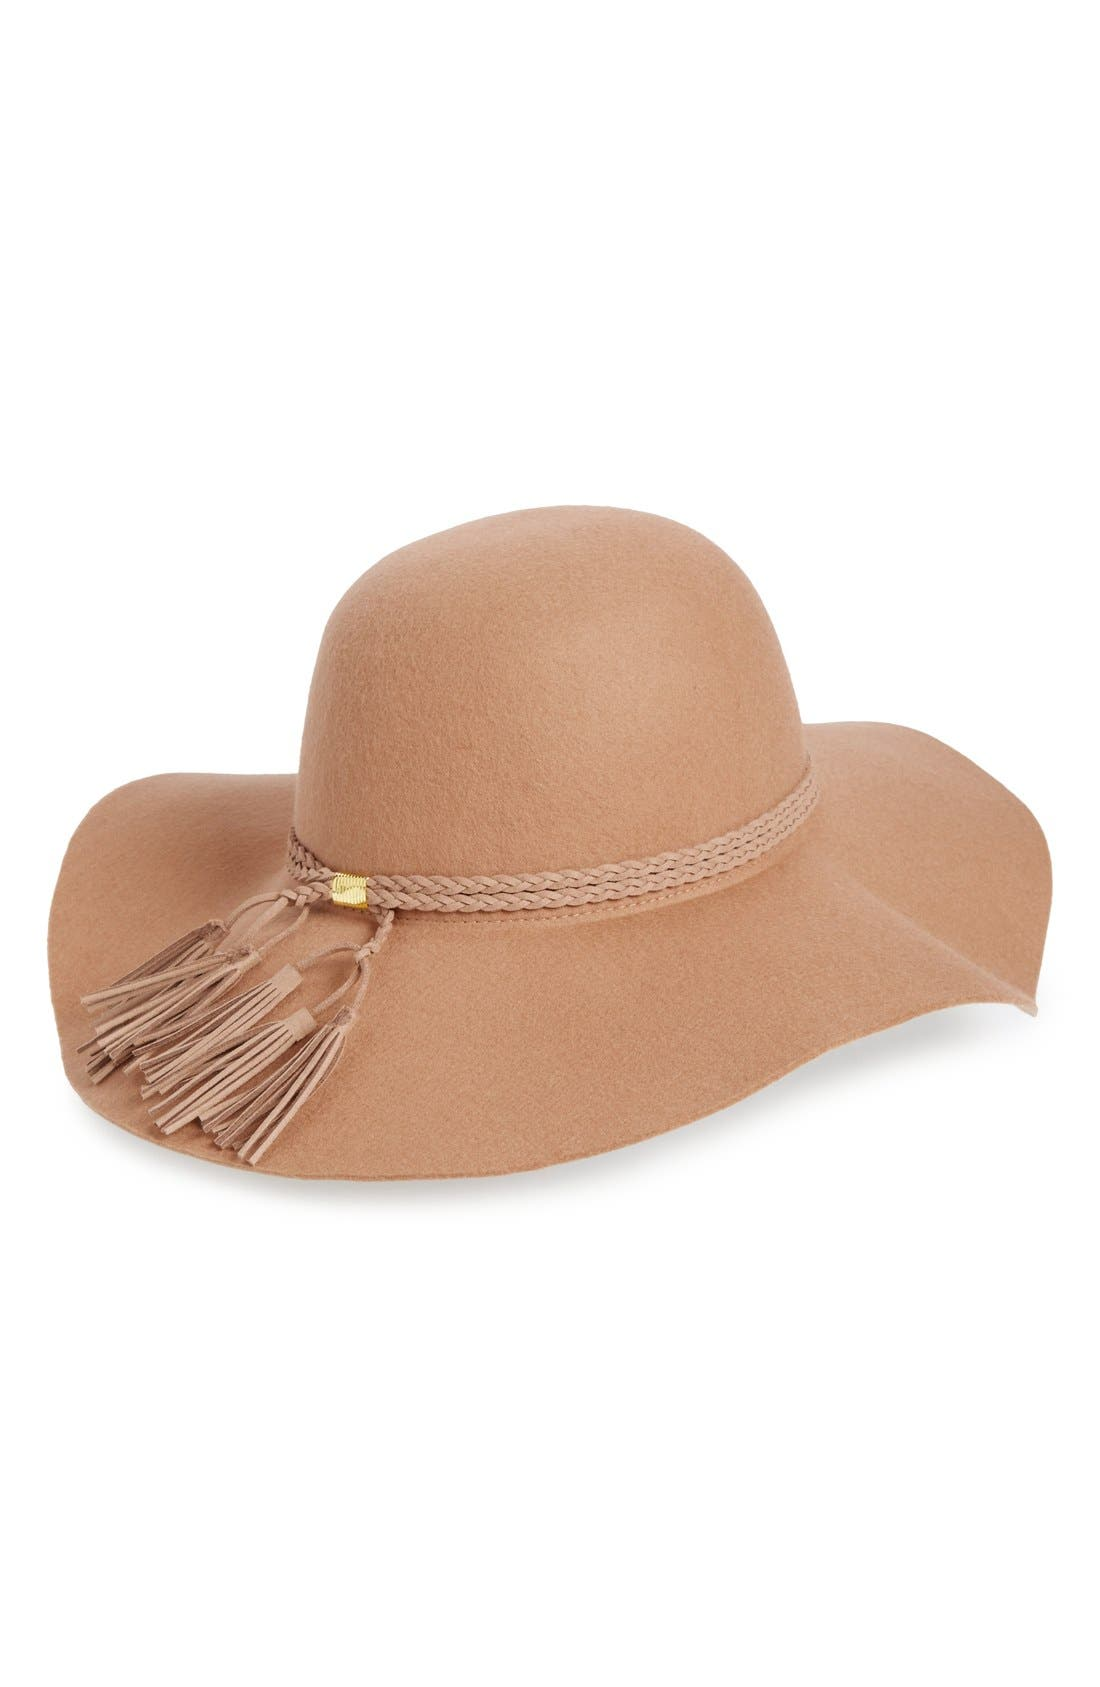 Tassel Floppy Wool Hat,                             Main thumbnail 1, color,                             Tan